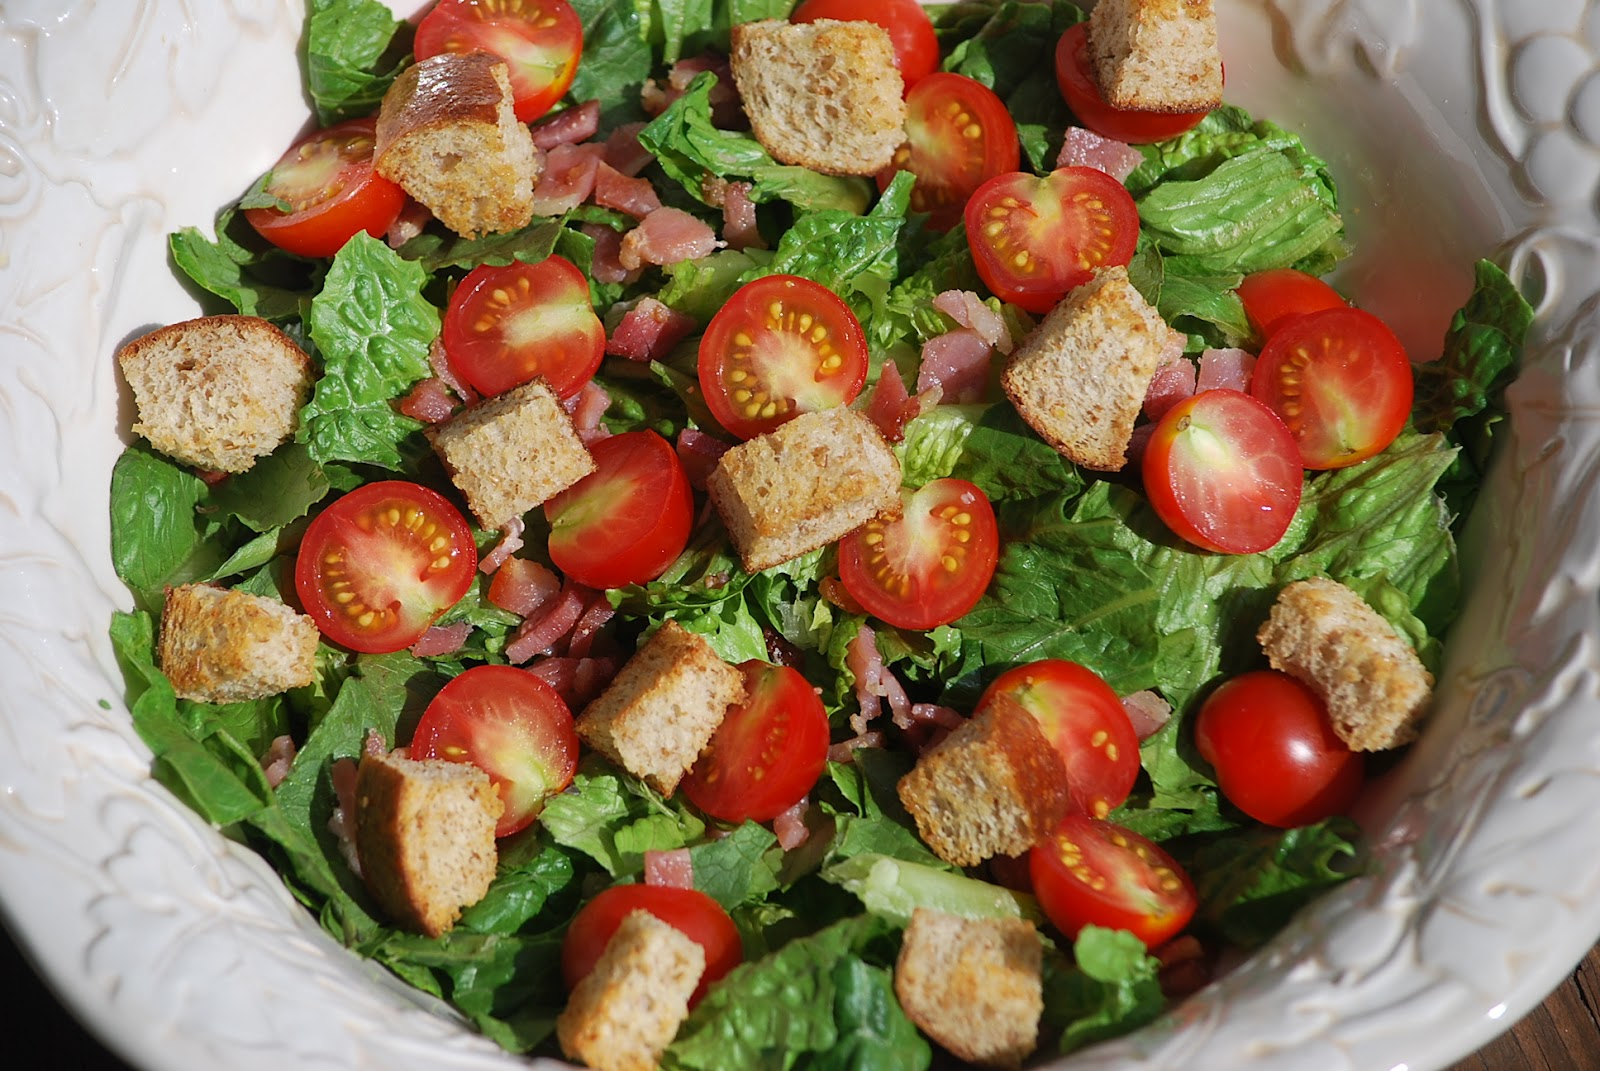 My story in recipes: BLT Salad